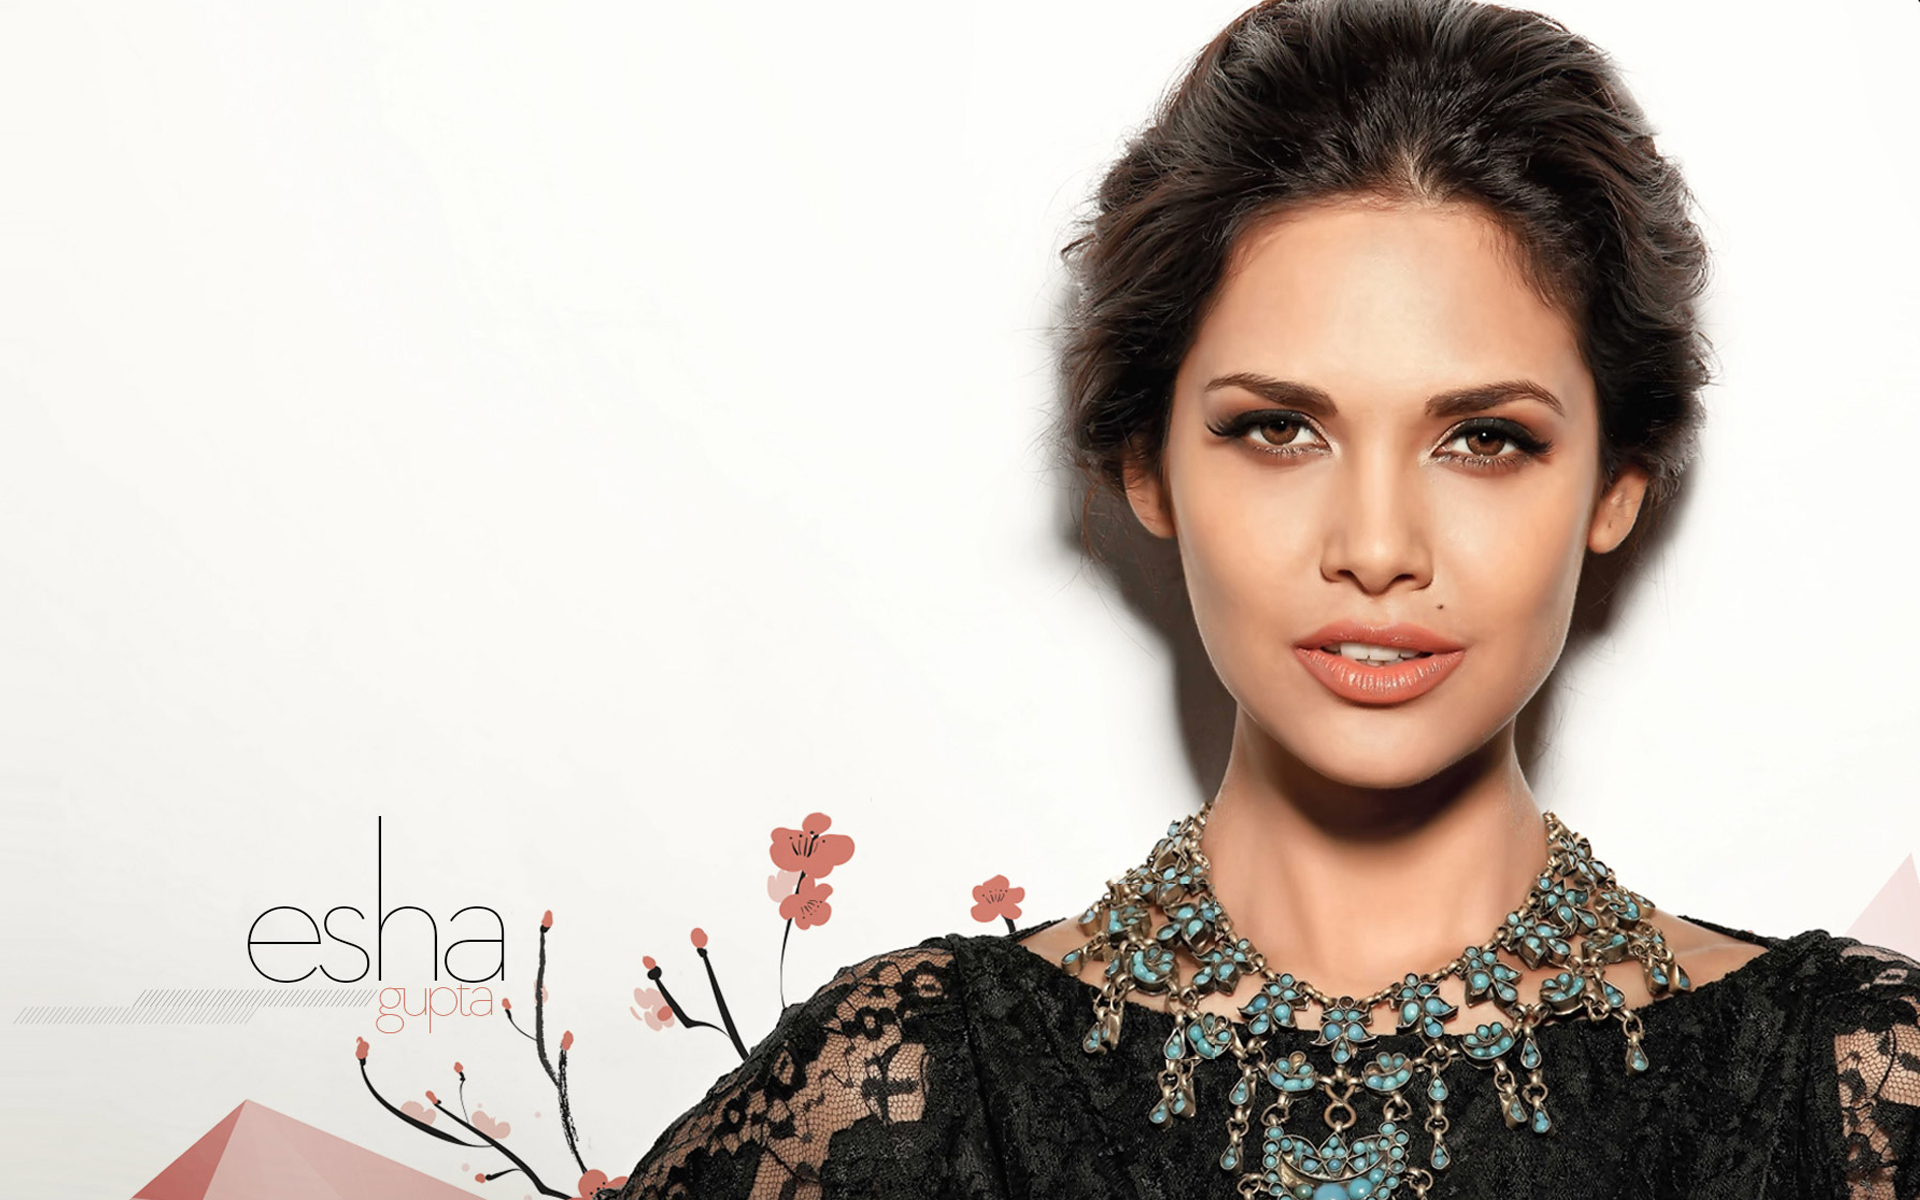 Esha Gupta Desktop Wallpapers Pictures Photos Backgrounds 2015 ...